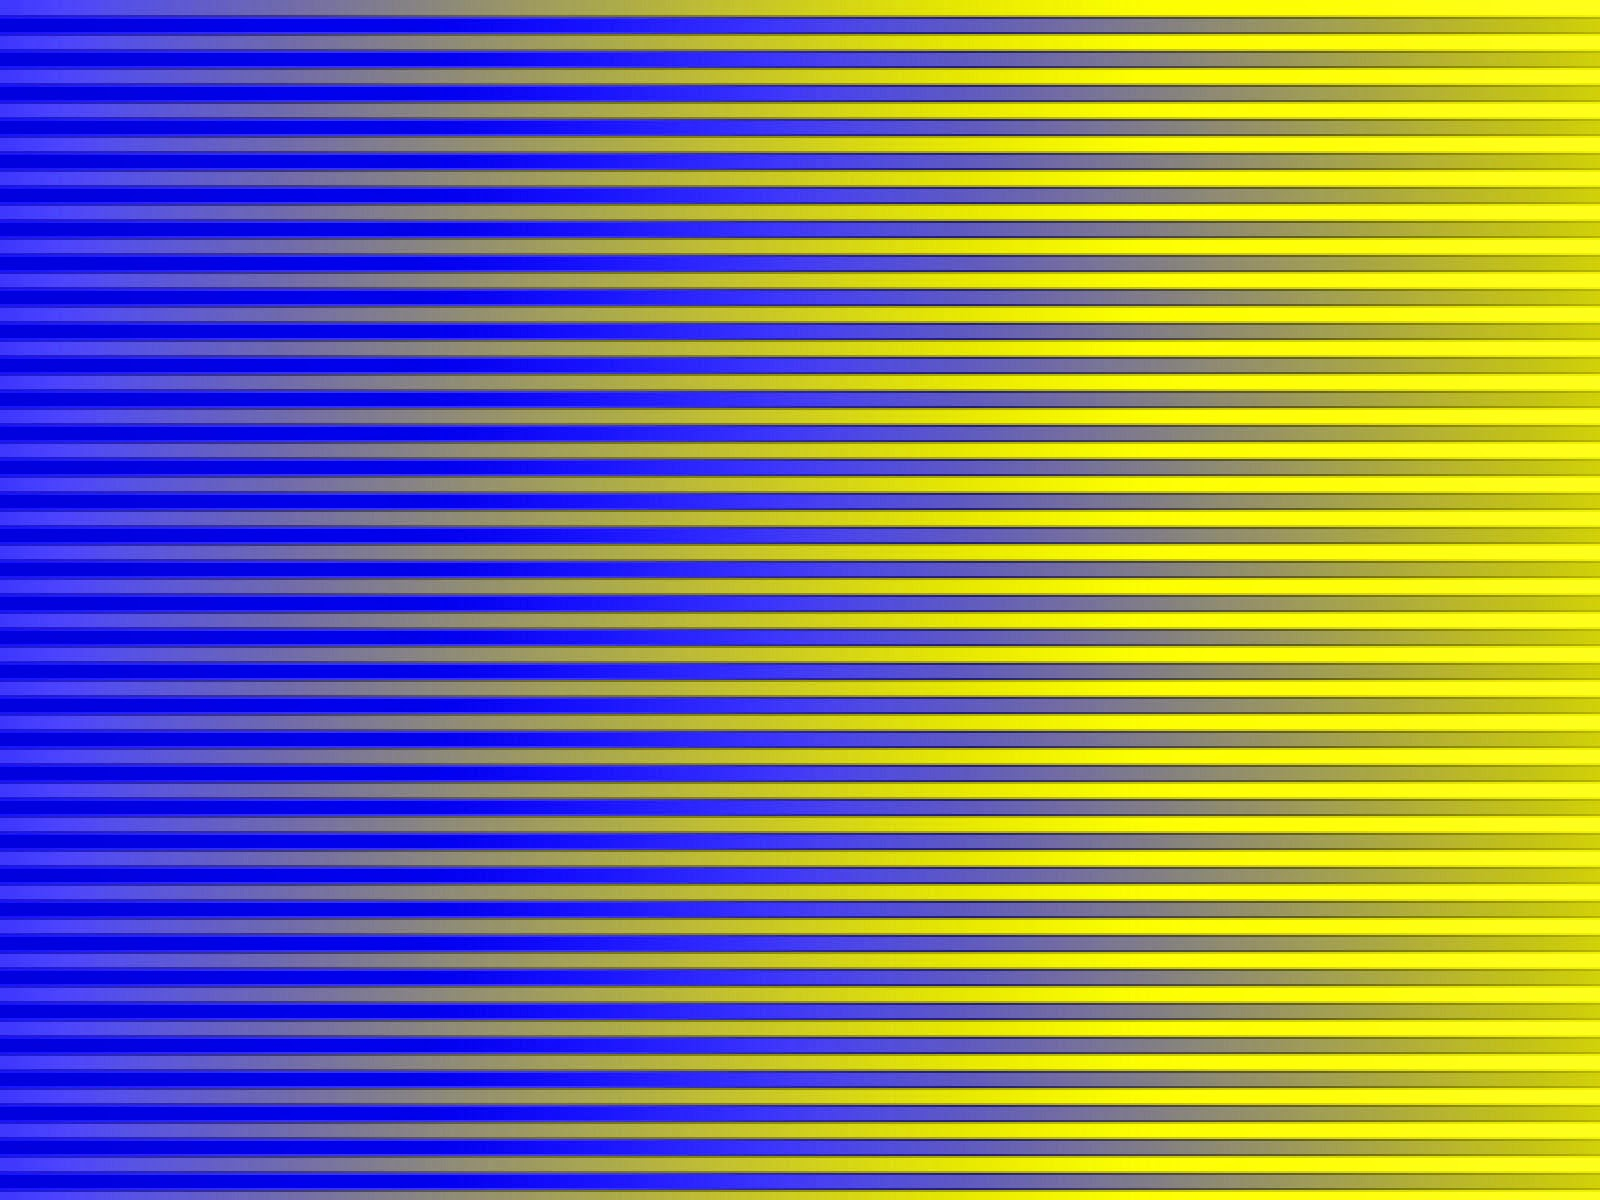 Blue And Yellow Striped Wallpaper: Download Yellow And Blue Striped Wallpaper Gallery